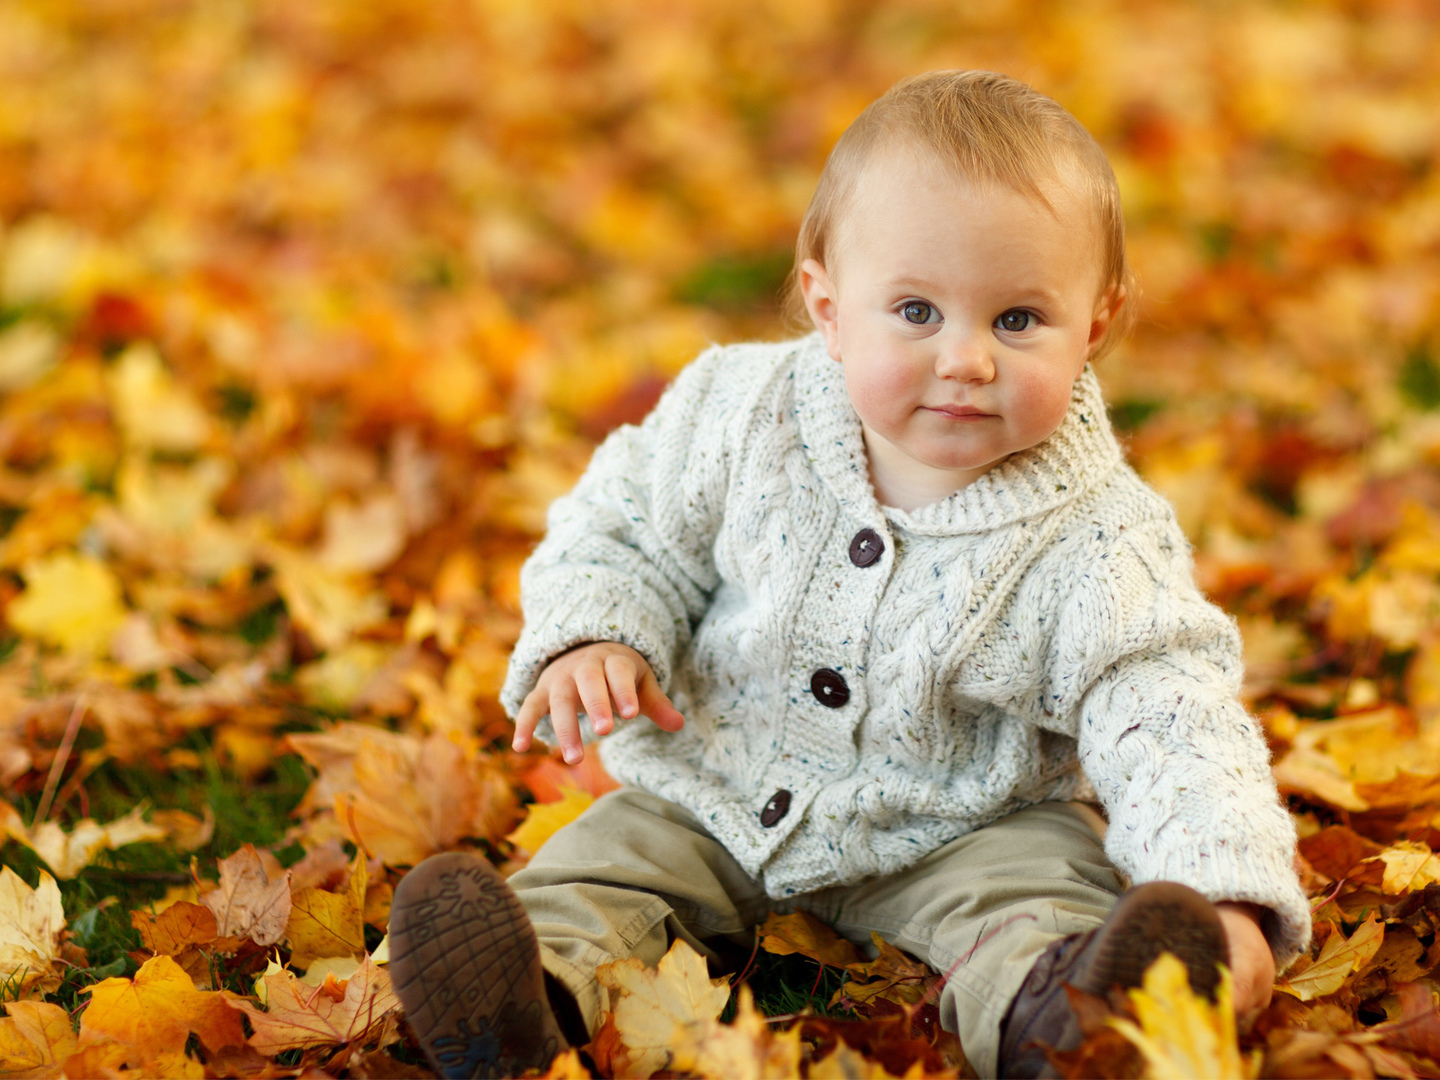 Cute Baby Boy Autumn Leaves (1440x1080)